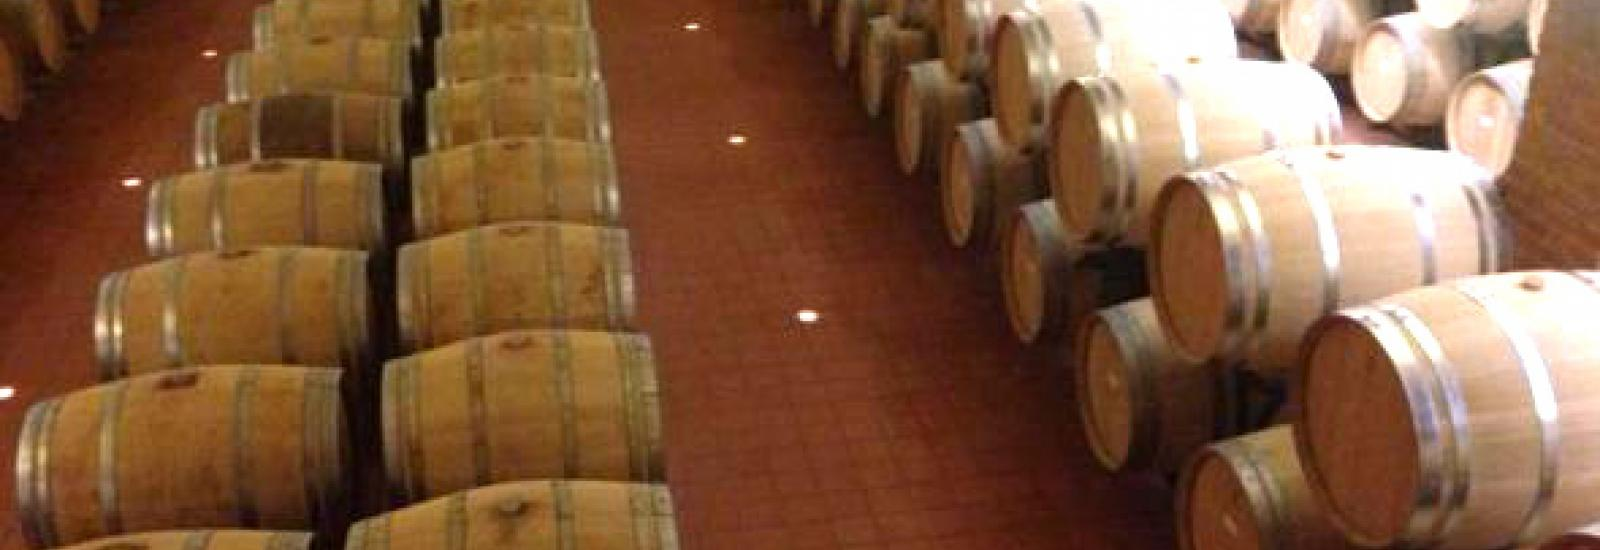 Botti di vino in una cantina di Scansano